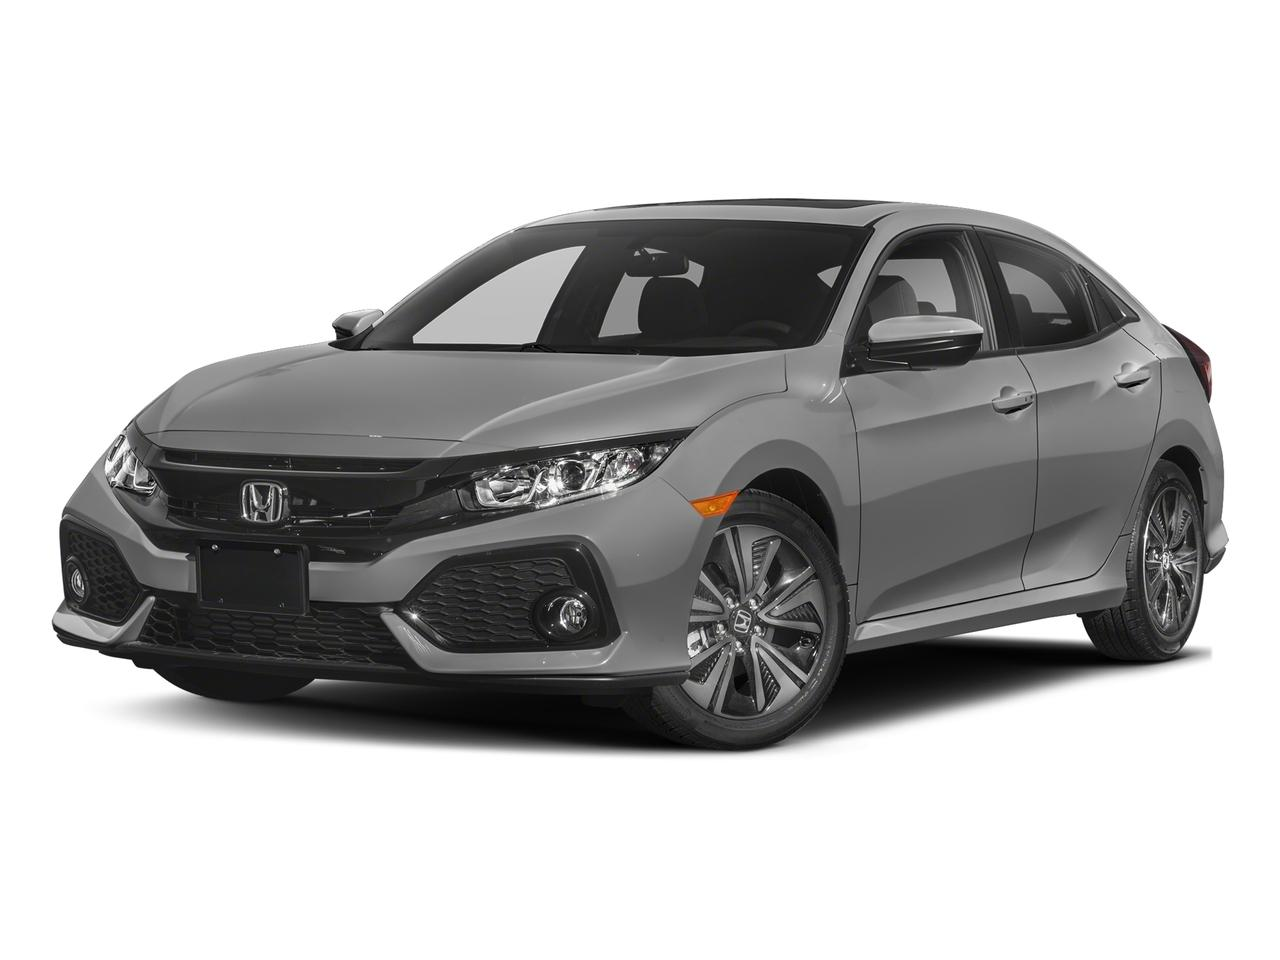 2018 Honda Civic Hatchback Vehicle Photo in Oshkosh, WI 54904